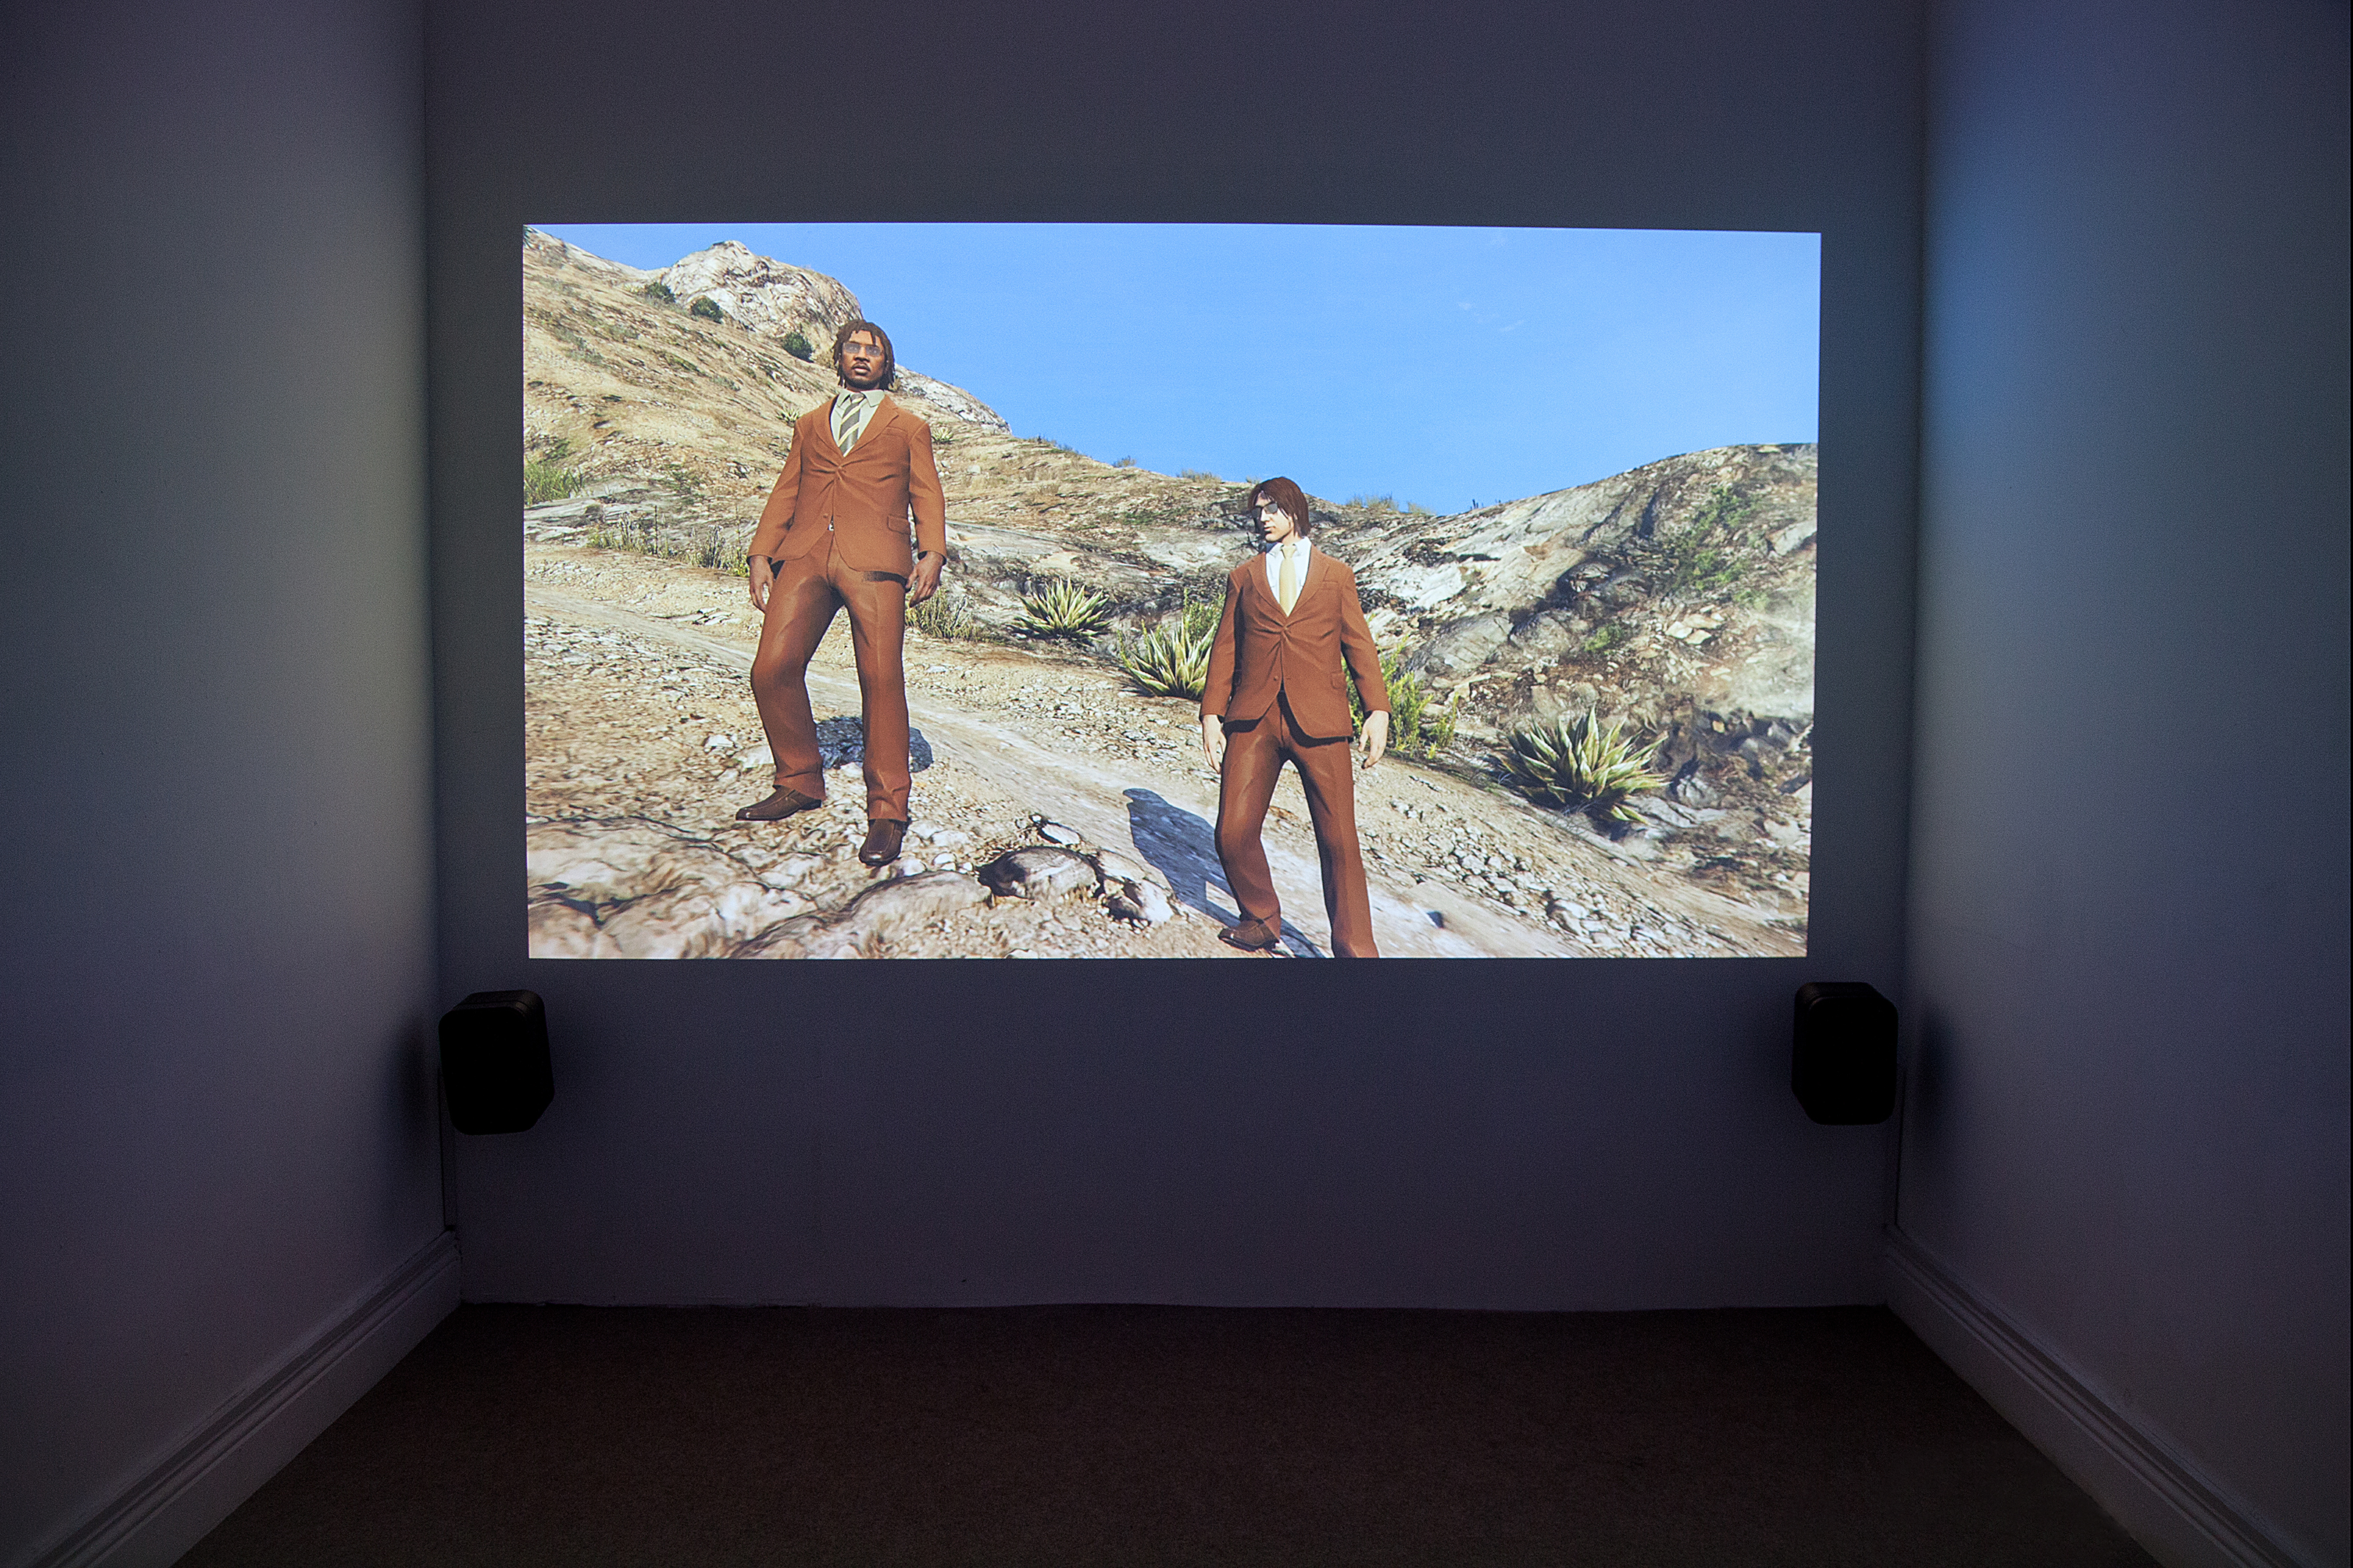 Larry Achiompong and David Blandy, Finding Fanon 2, 2015. UHD digital video, 9 min, 13 sec. Exhibition view at EVA International – Ireland's Biennial 2016. Photo Miriam O'Connor. Courtesy the artists and EVA International.